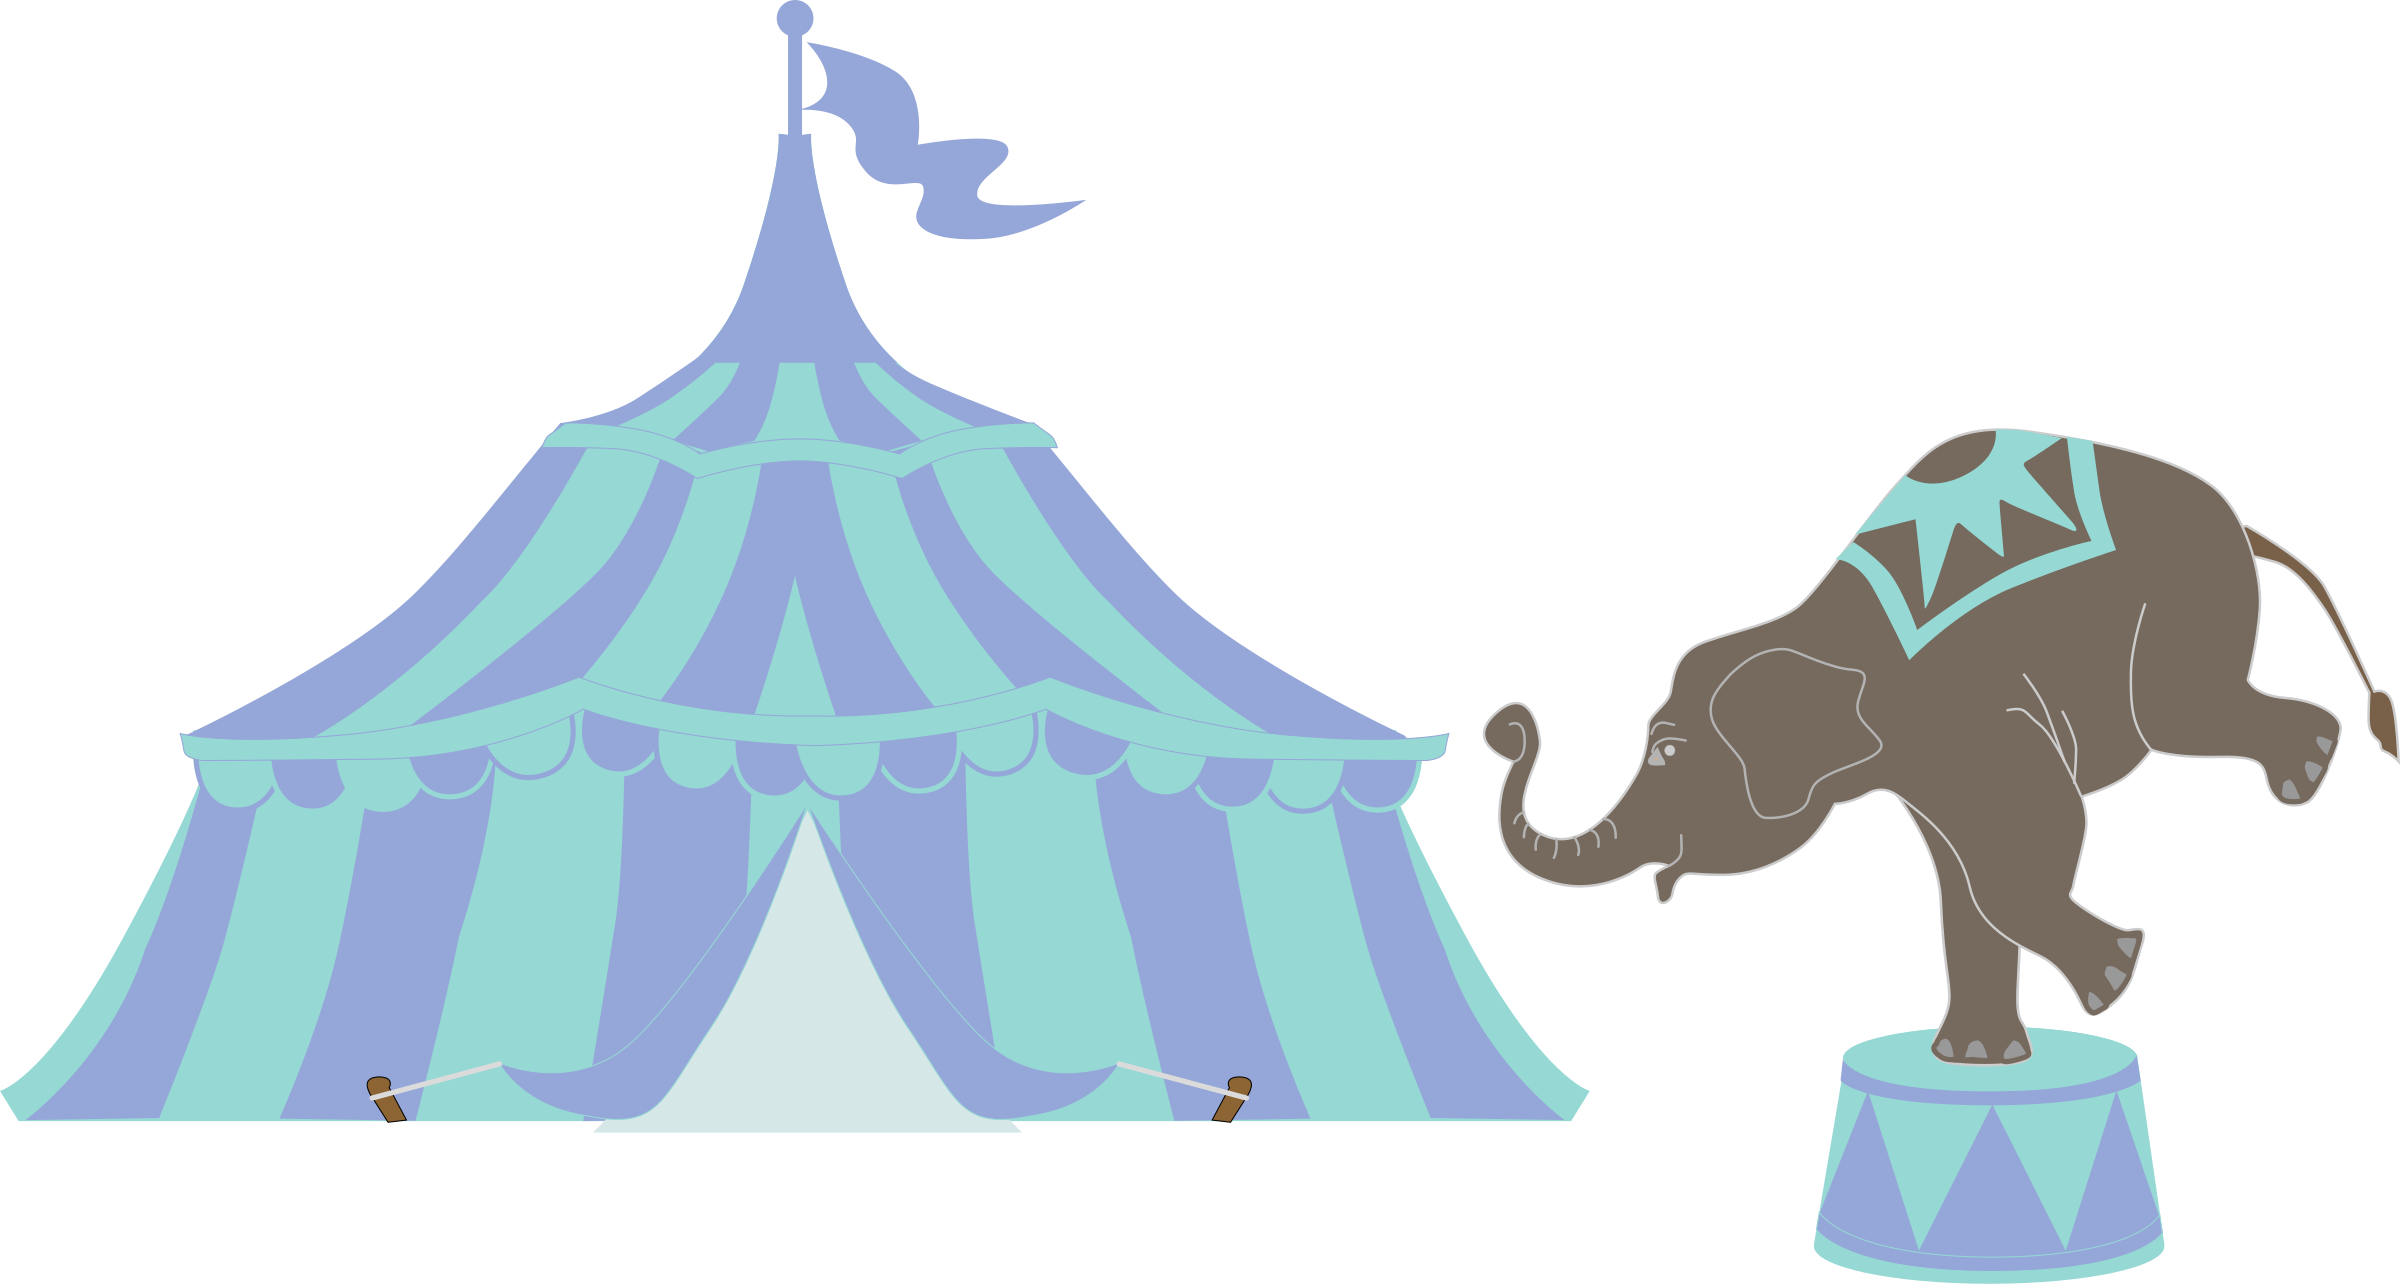 Clipart tent circus circus. Zirkuszelt icons png free